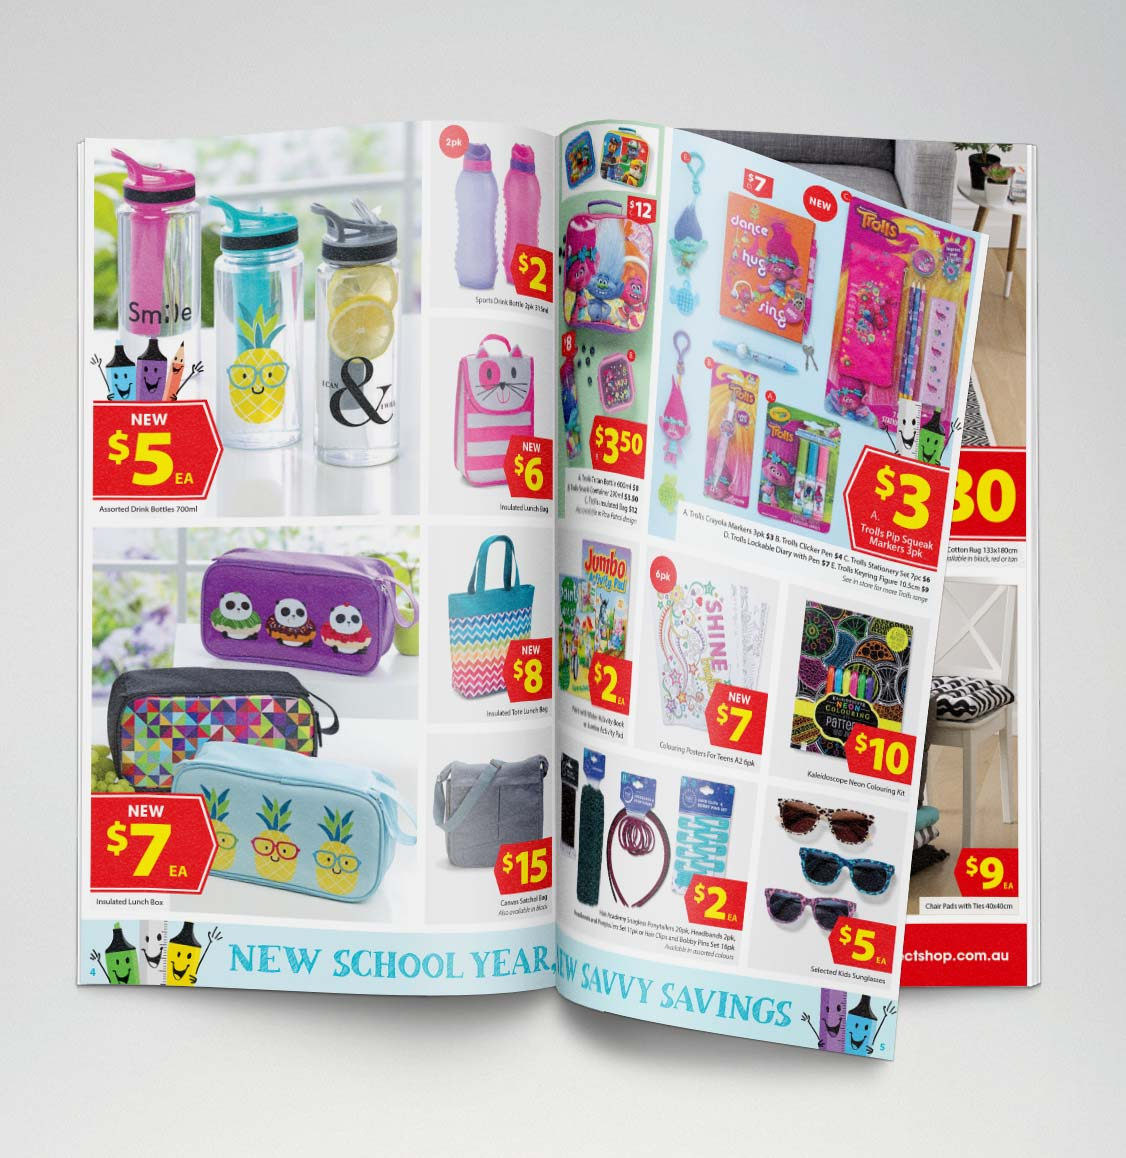 The Reject Shop catalogue showing savvy savings